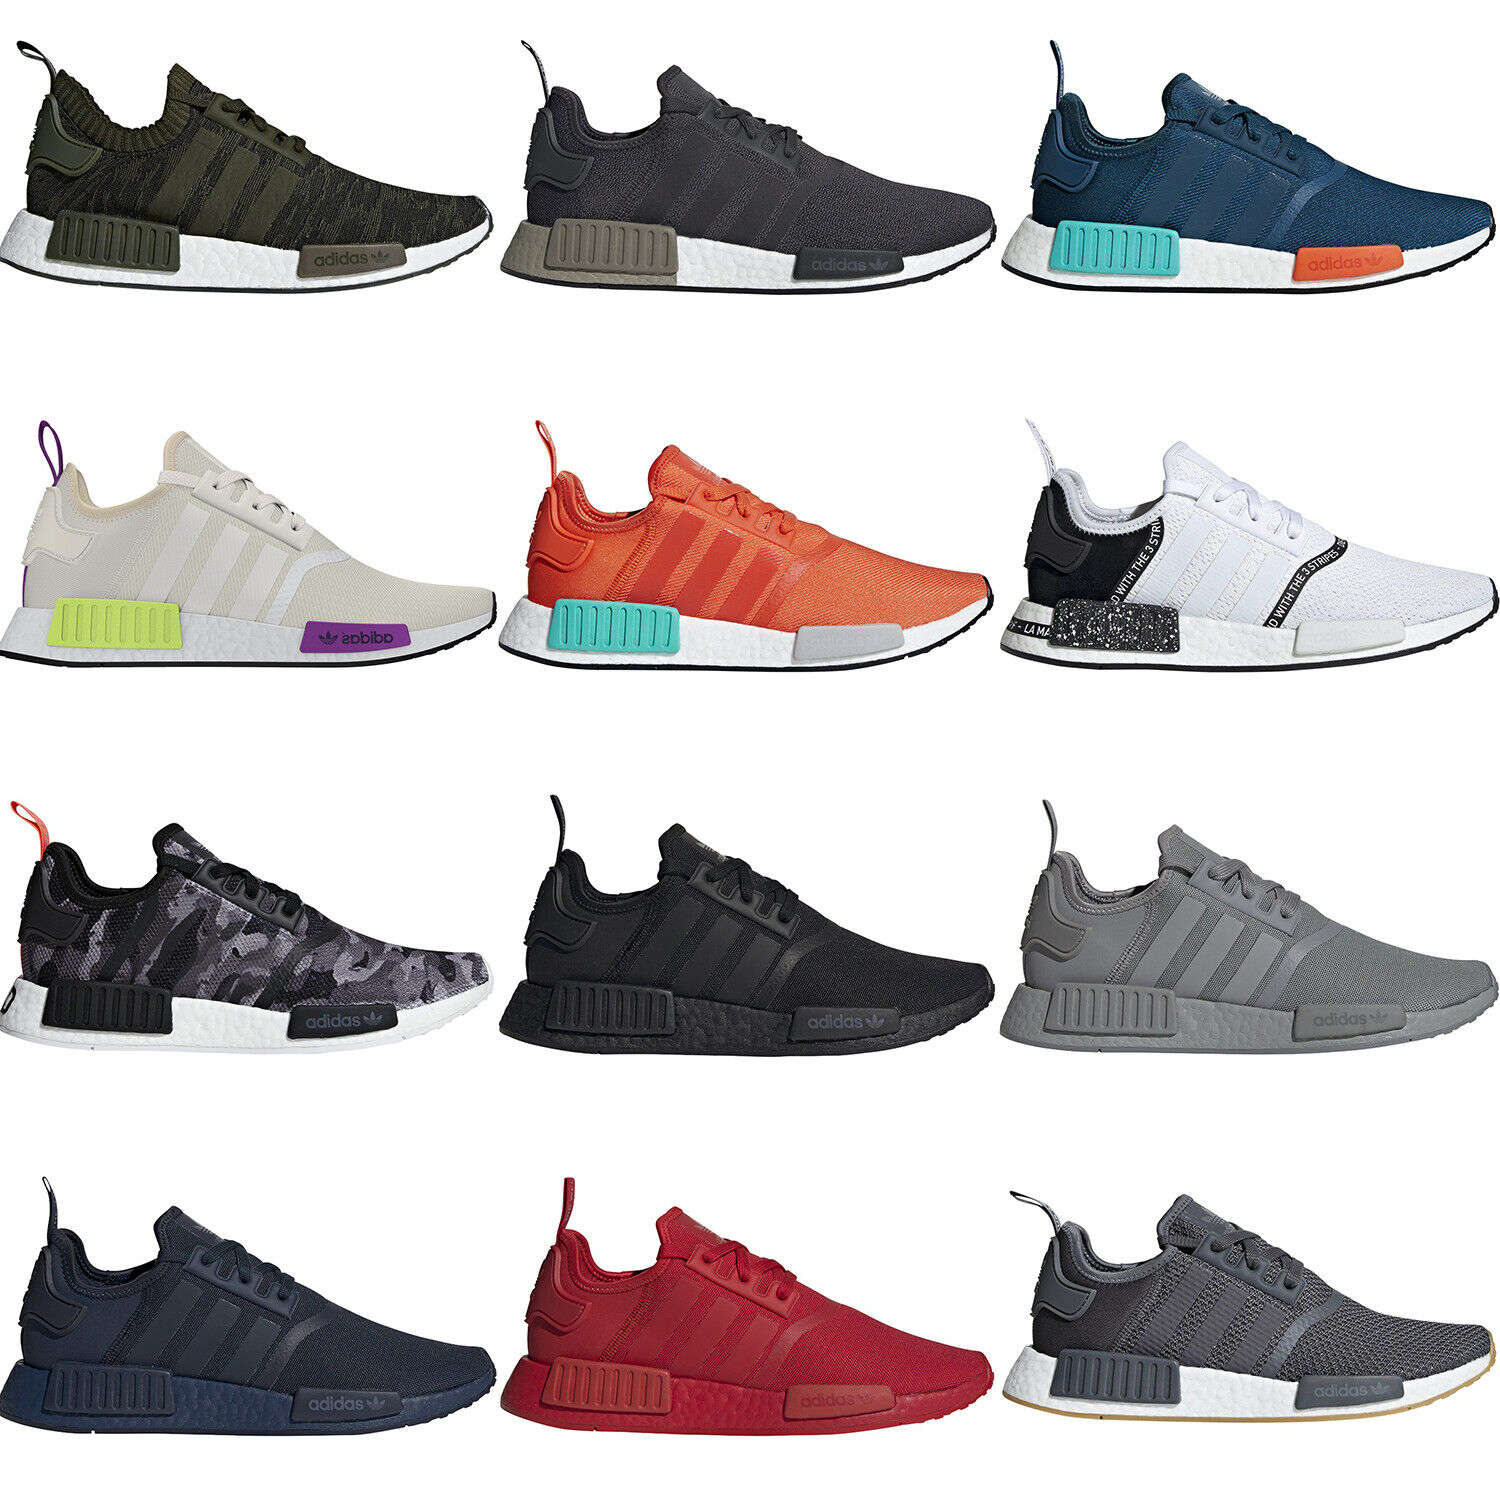 adidas Mens NMD_R1 Shoes Causal Boost 3 Stripes Fashion Sports Running Sneakers